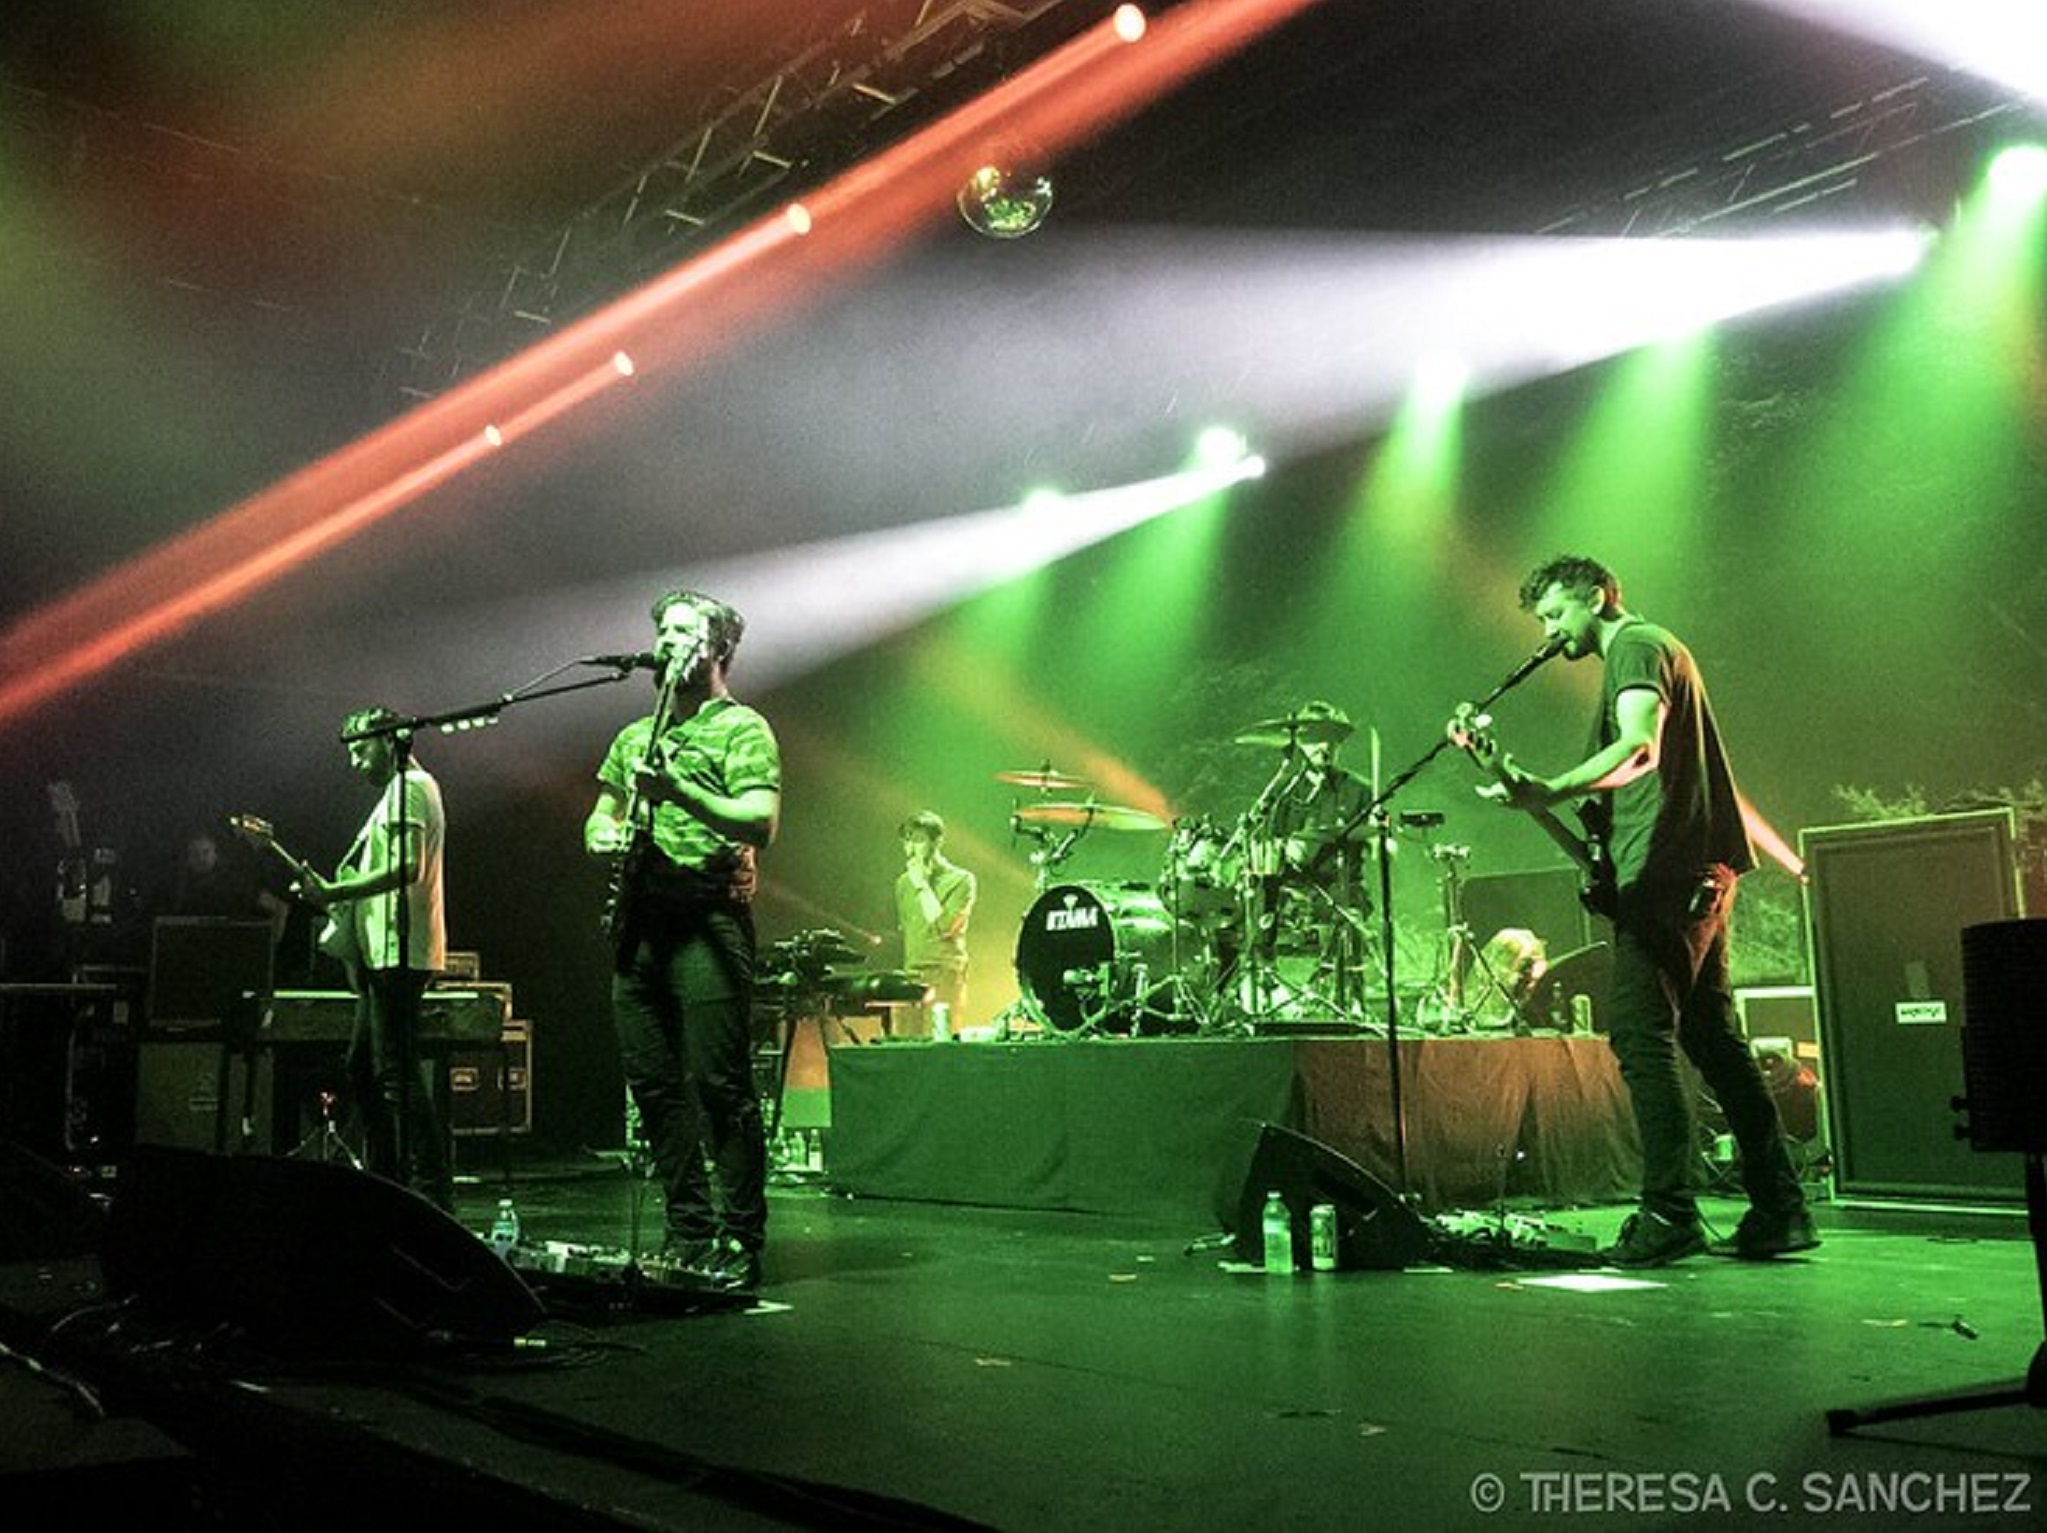 A band on a stage under green and red lights